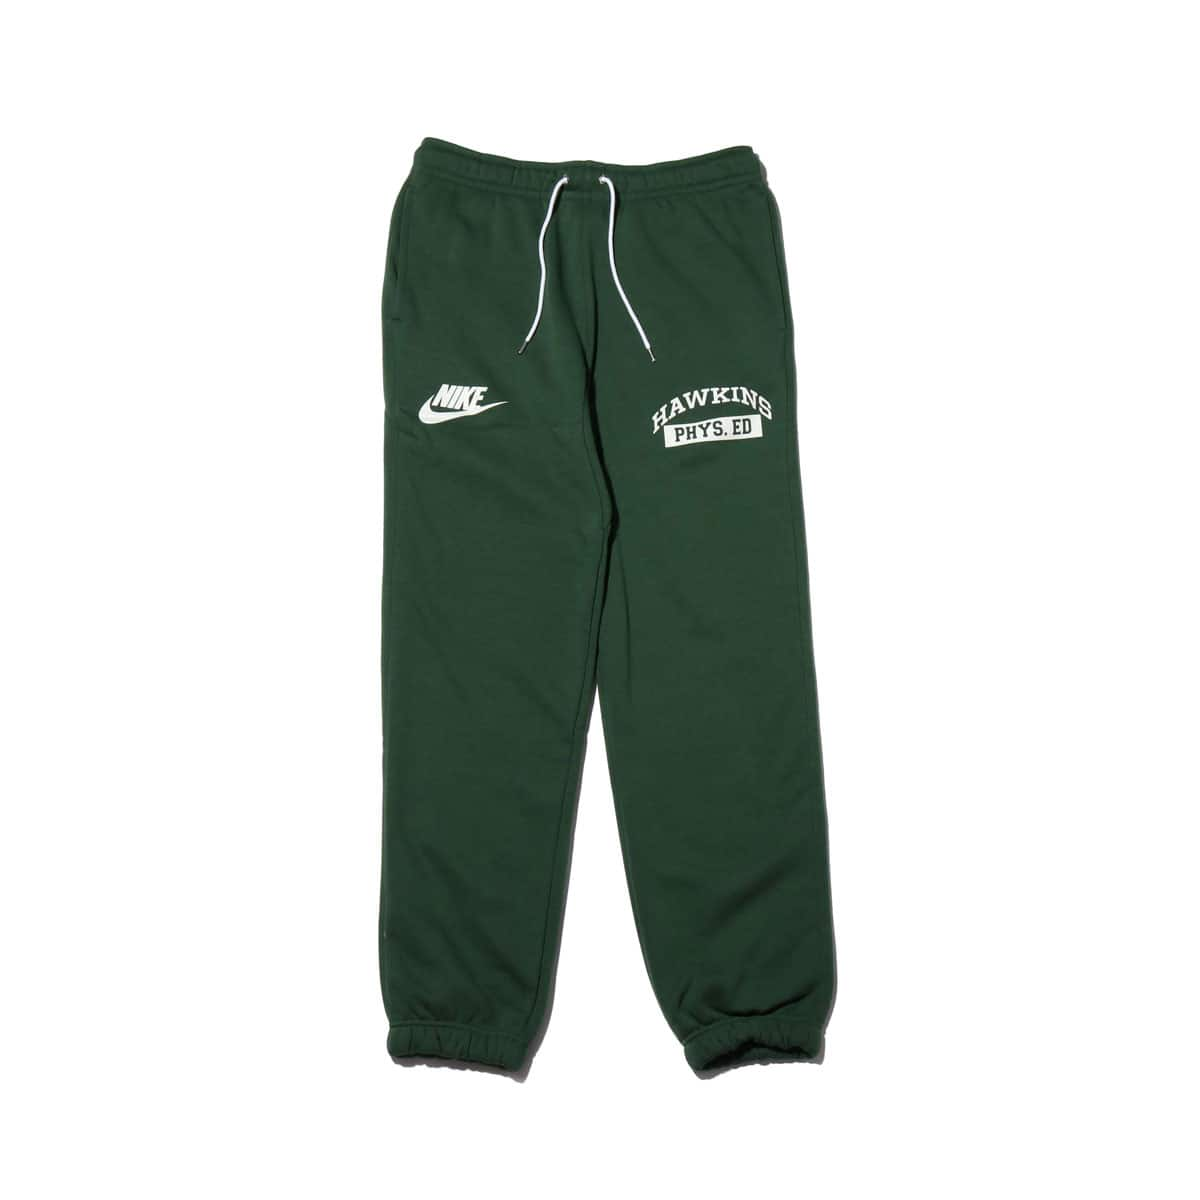 NIKE M NRG CLUB PANT CF BB S.T. FIR/WHITE/SAIL 19SU-S_photo_large